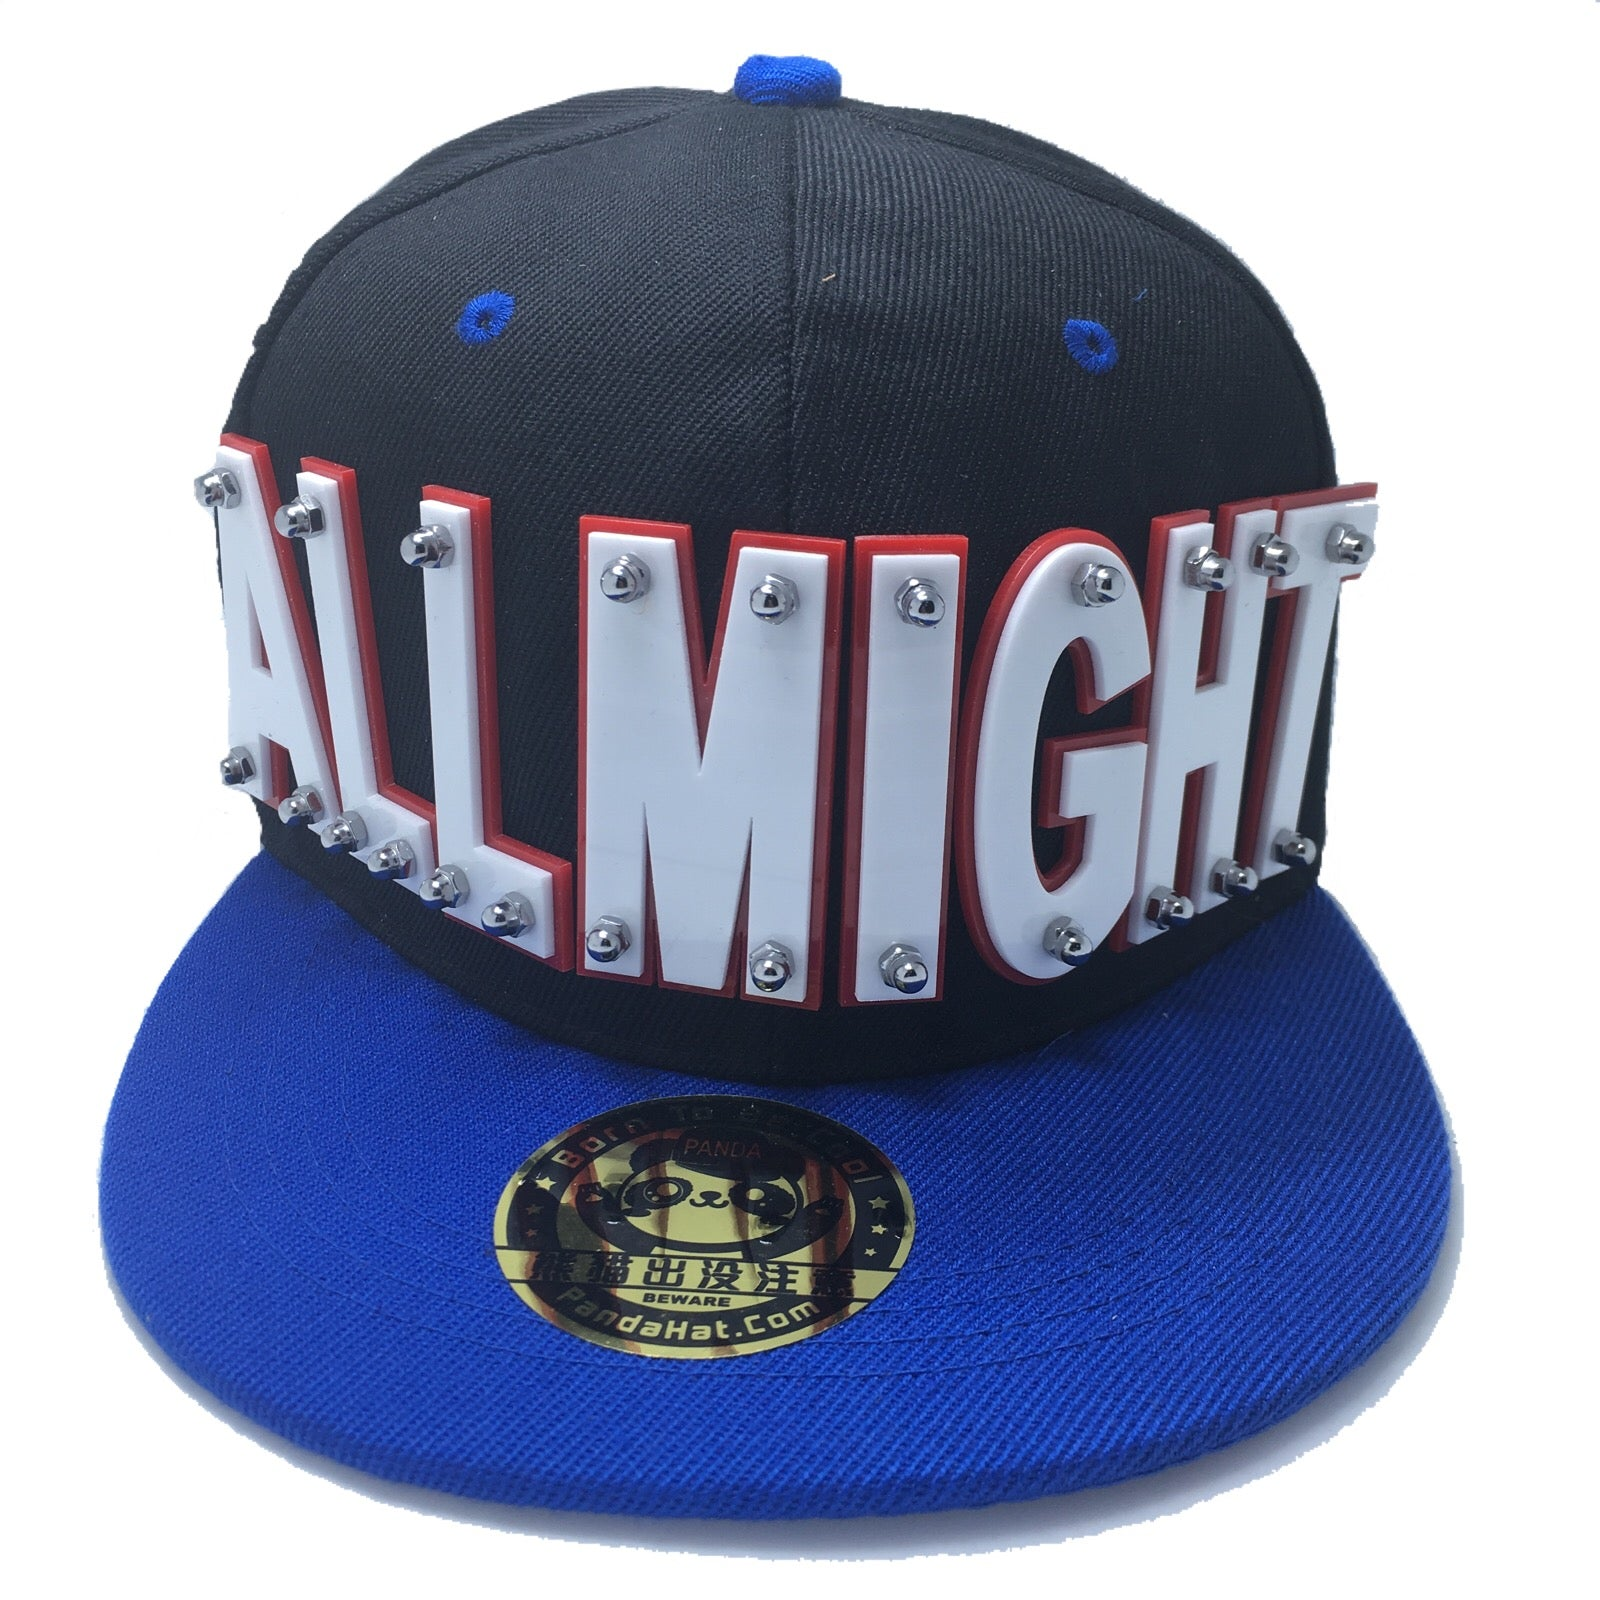 ALLMIGHT HAT IN BLACK WITH BLUE BRIM - Pandahat bf28e8a2960